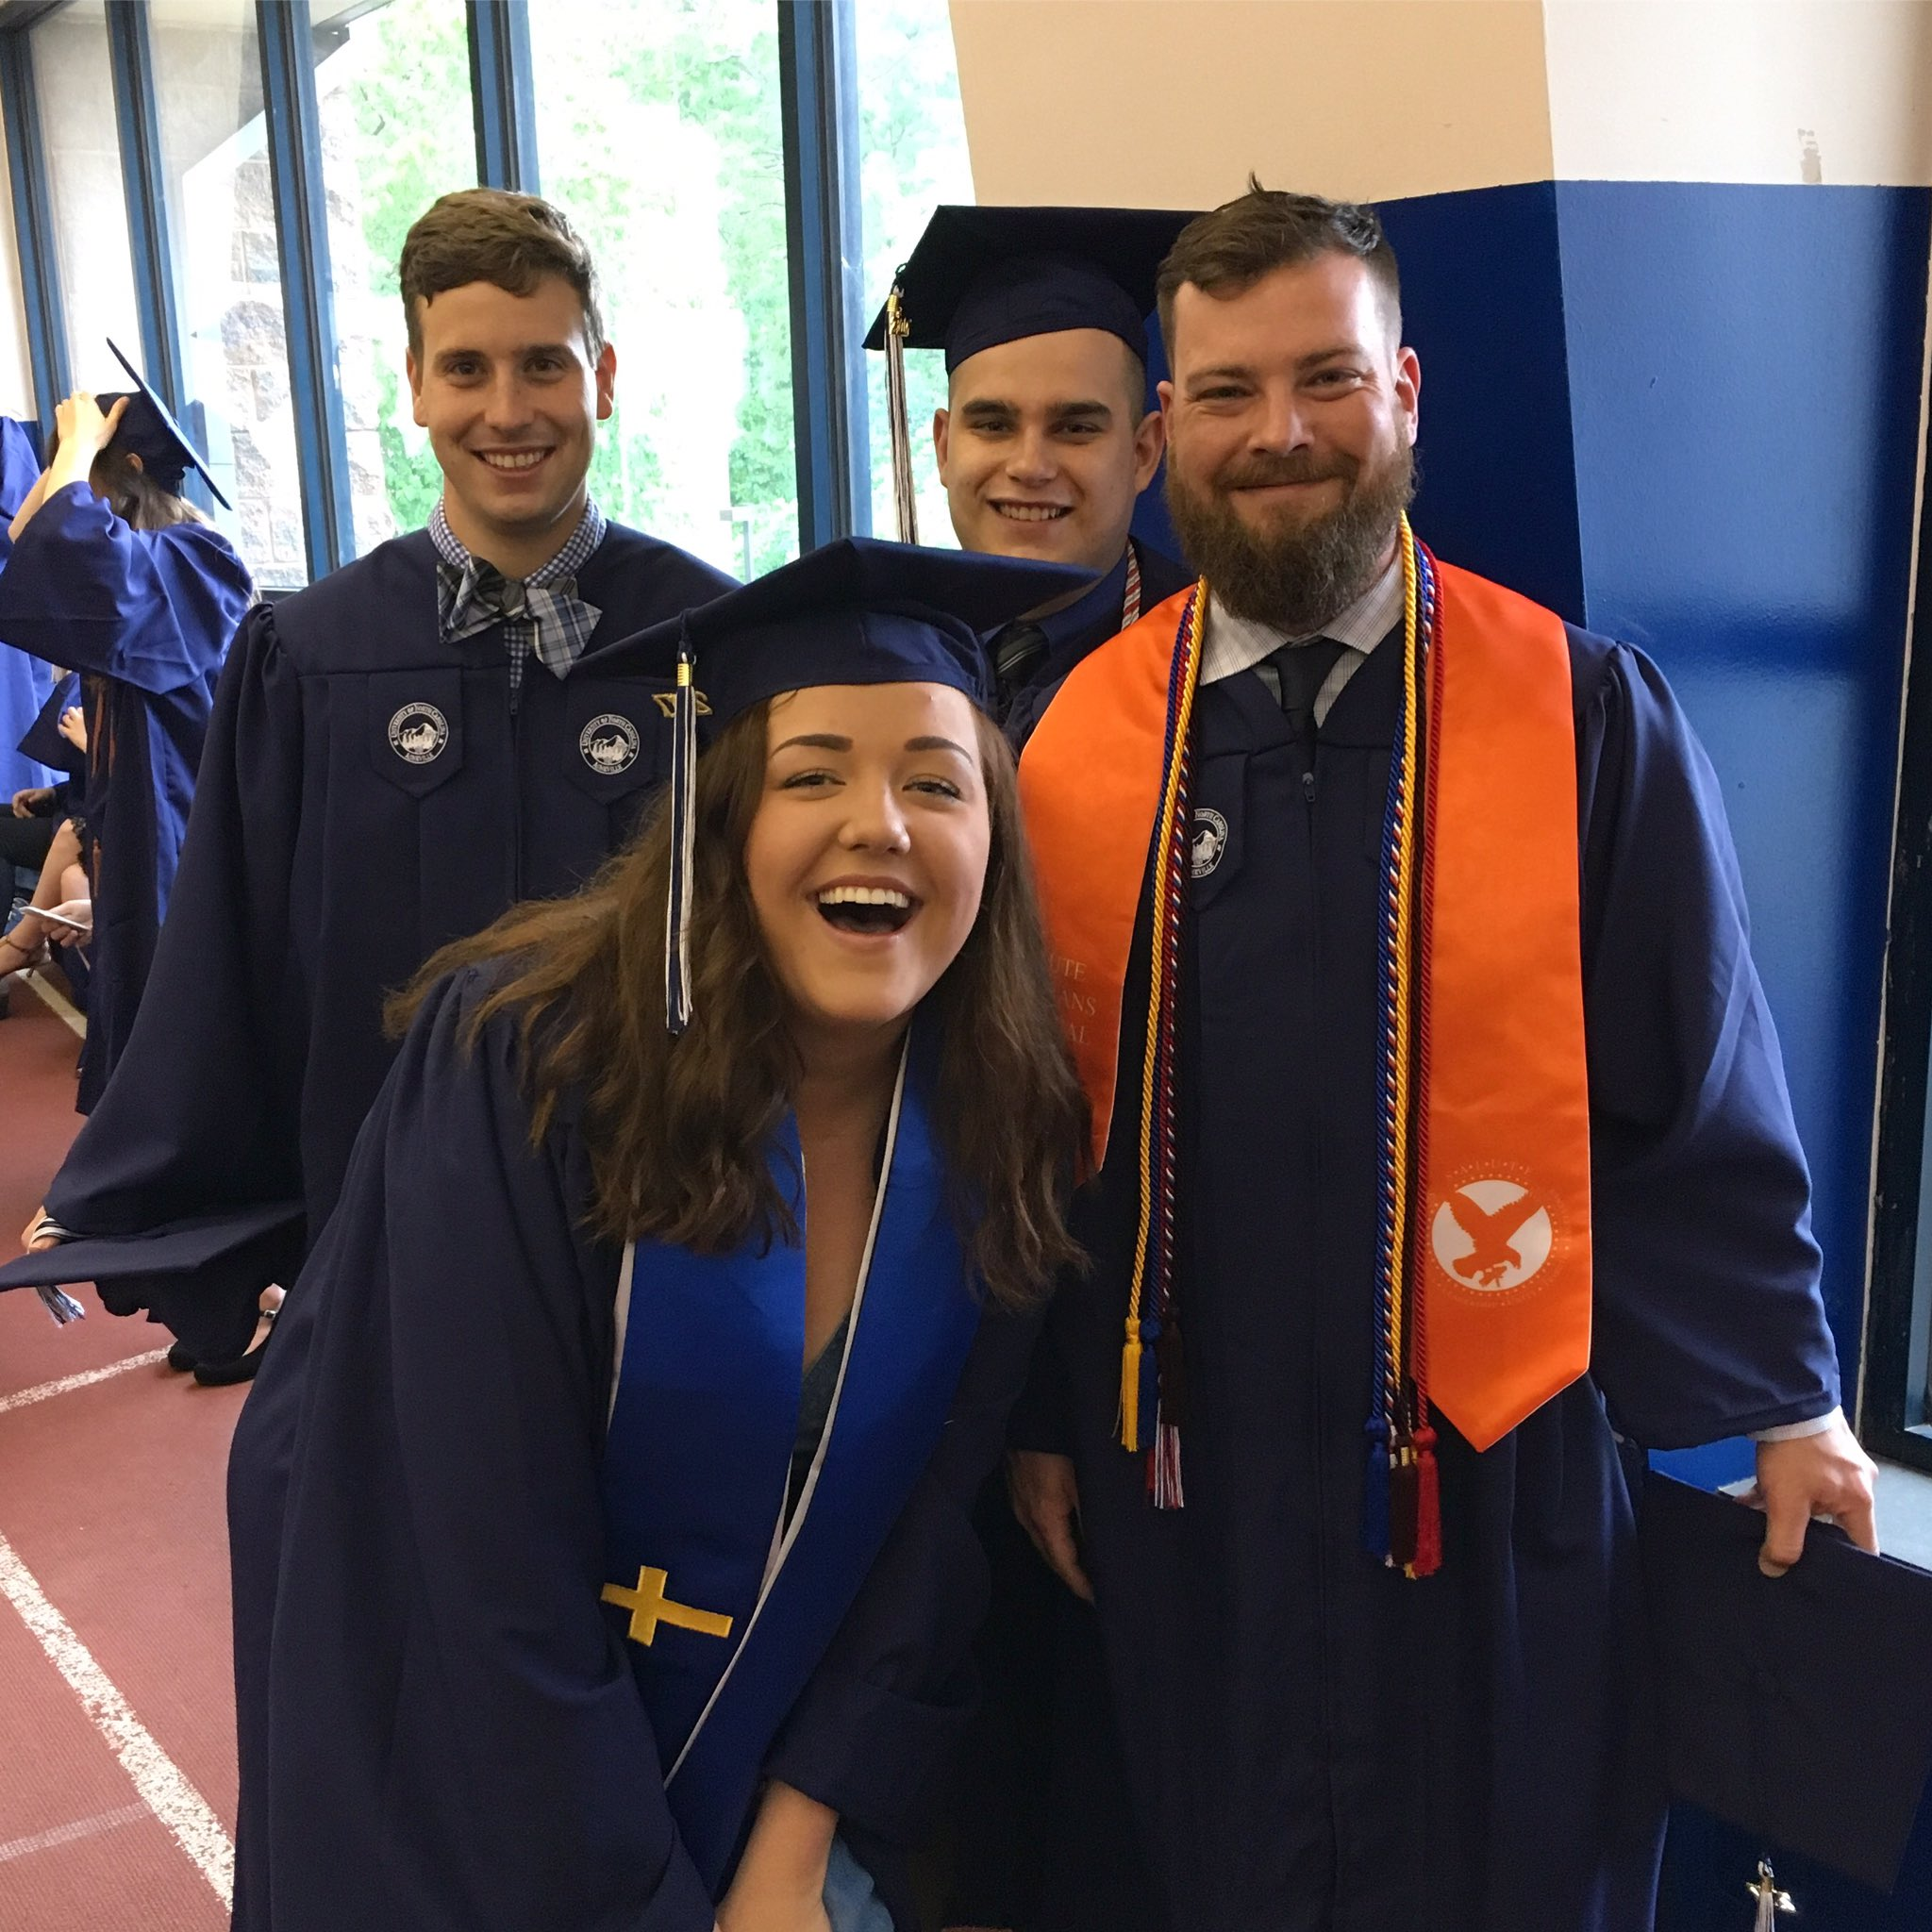 All smiles on #graduationday #uncavl2017 #soontobealumni https://t.co/m5PEDfJvsI